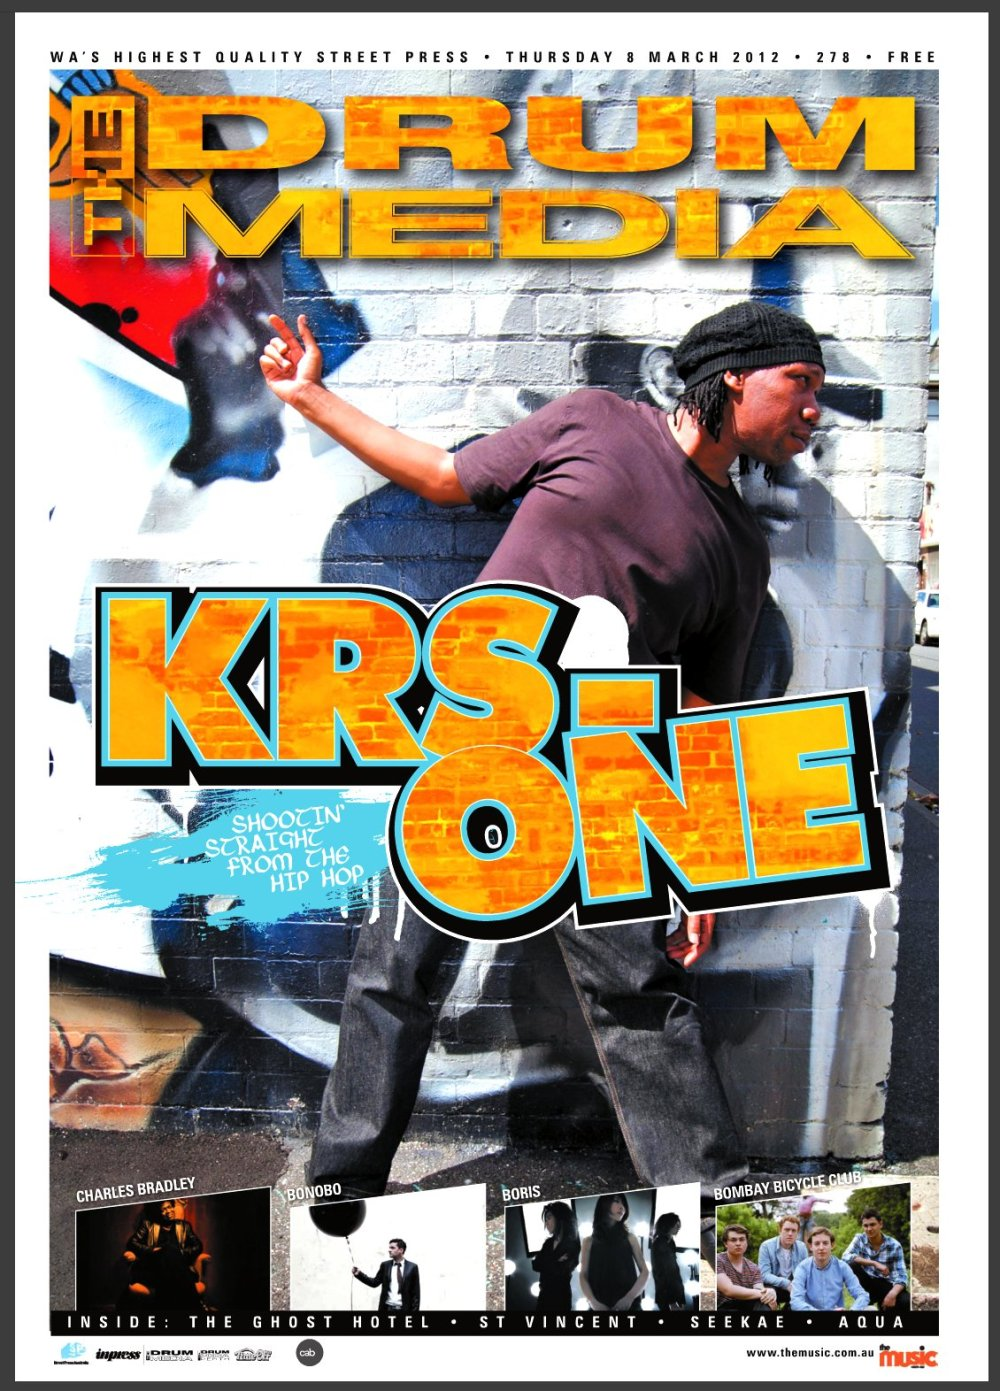 KRS interview [Mar 12] cover